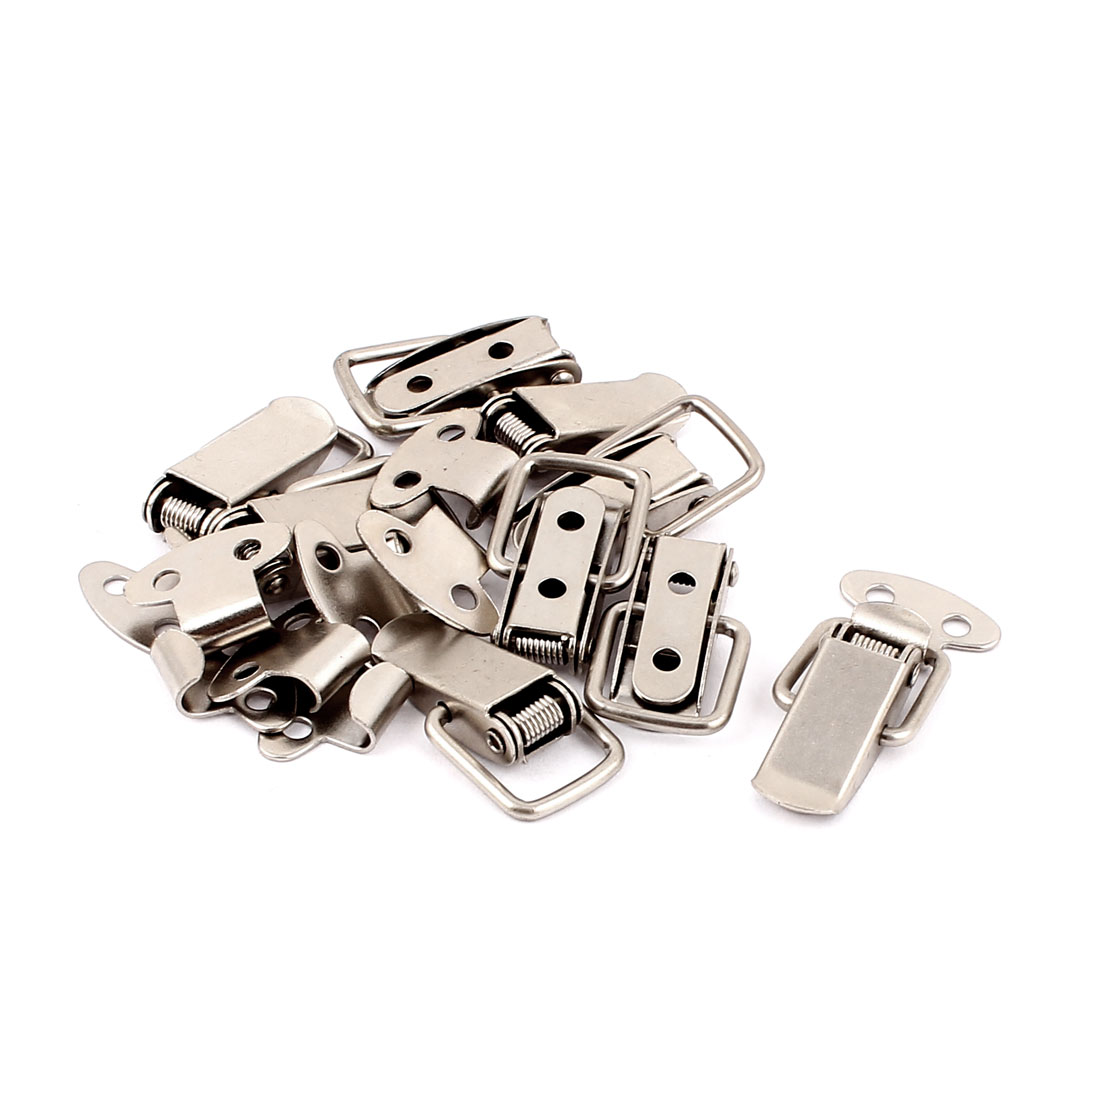 Hot Sale 9Pcs/pack 3.3cm Long Box Chest Case Spring Loaded Draw Toggle Latch Metal Catch Hardware High Quality Silver Tone